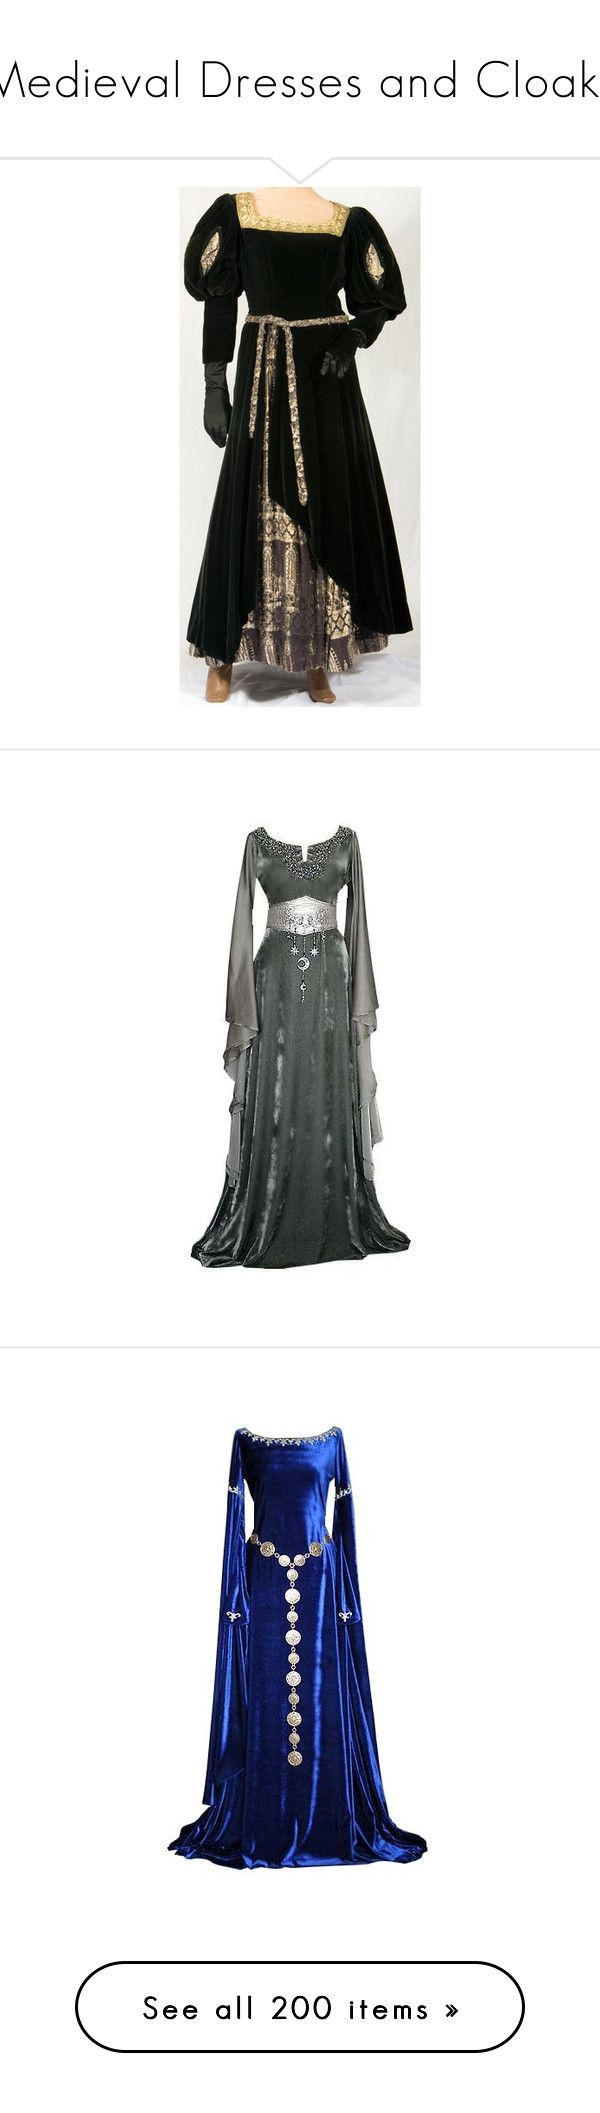 """Medieval Dresses and Cloaks"" by just-call-me-chuck ❤ liked on Polyvore featuring costumes, dresses, medieval, renaissance, queen costume, renaissance princess costume, maid marian costume, plus size halloween costumes, plus size princess costume and gowns"